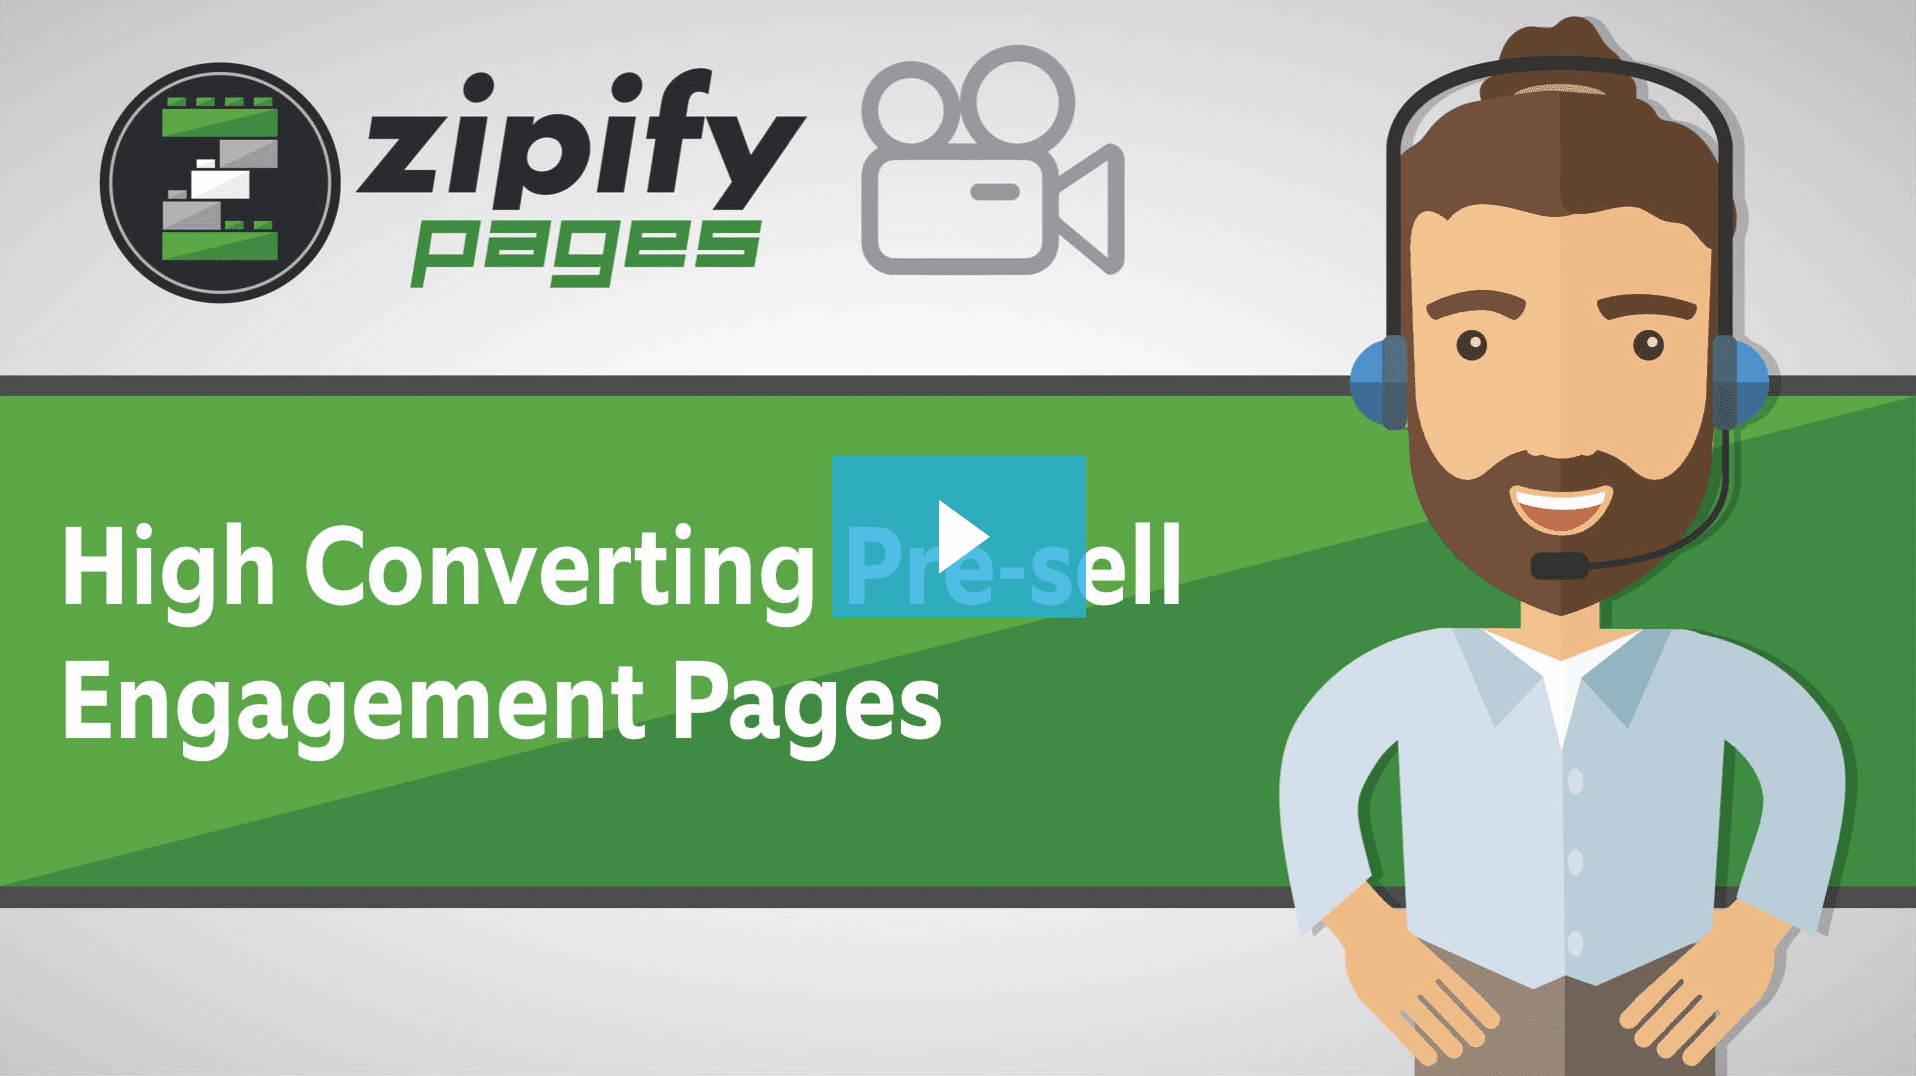 Zipify Pages - high converting pre-sell engagement pages